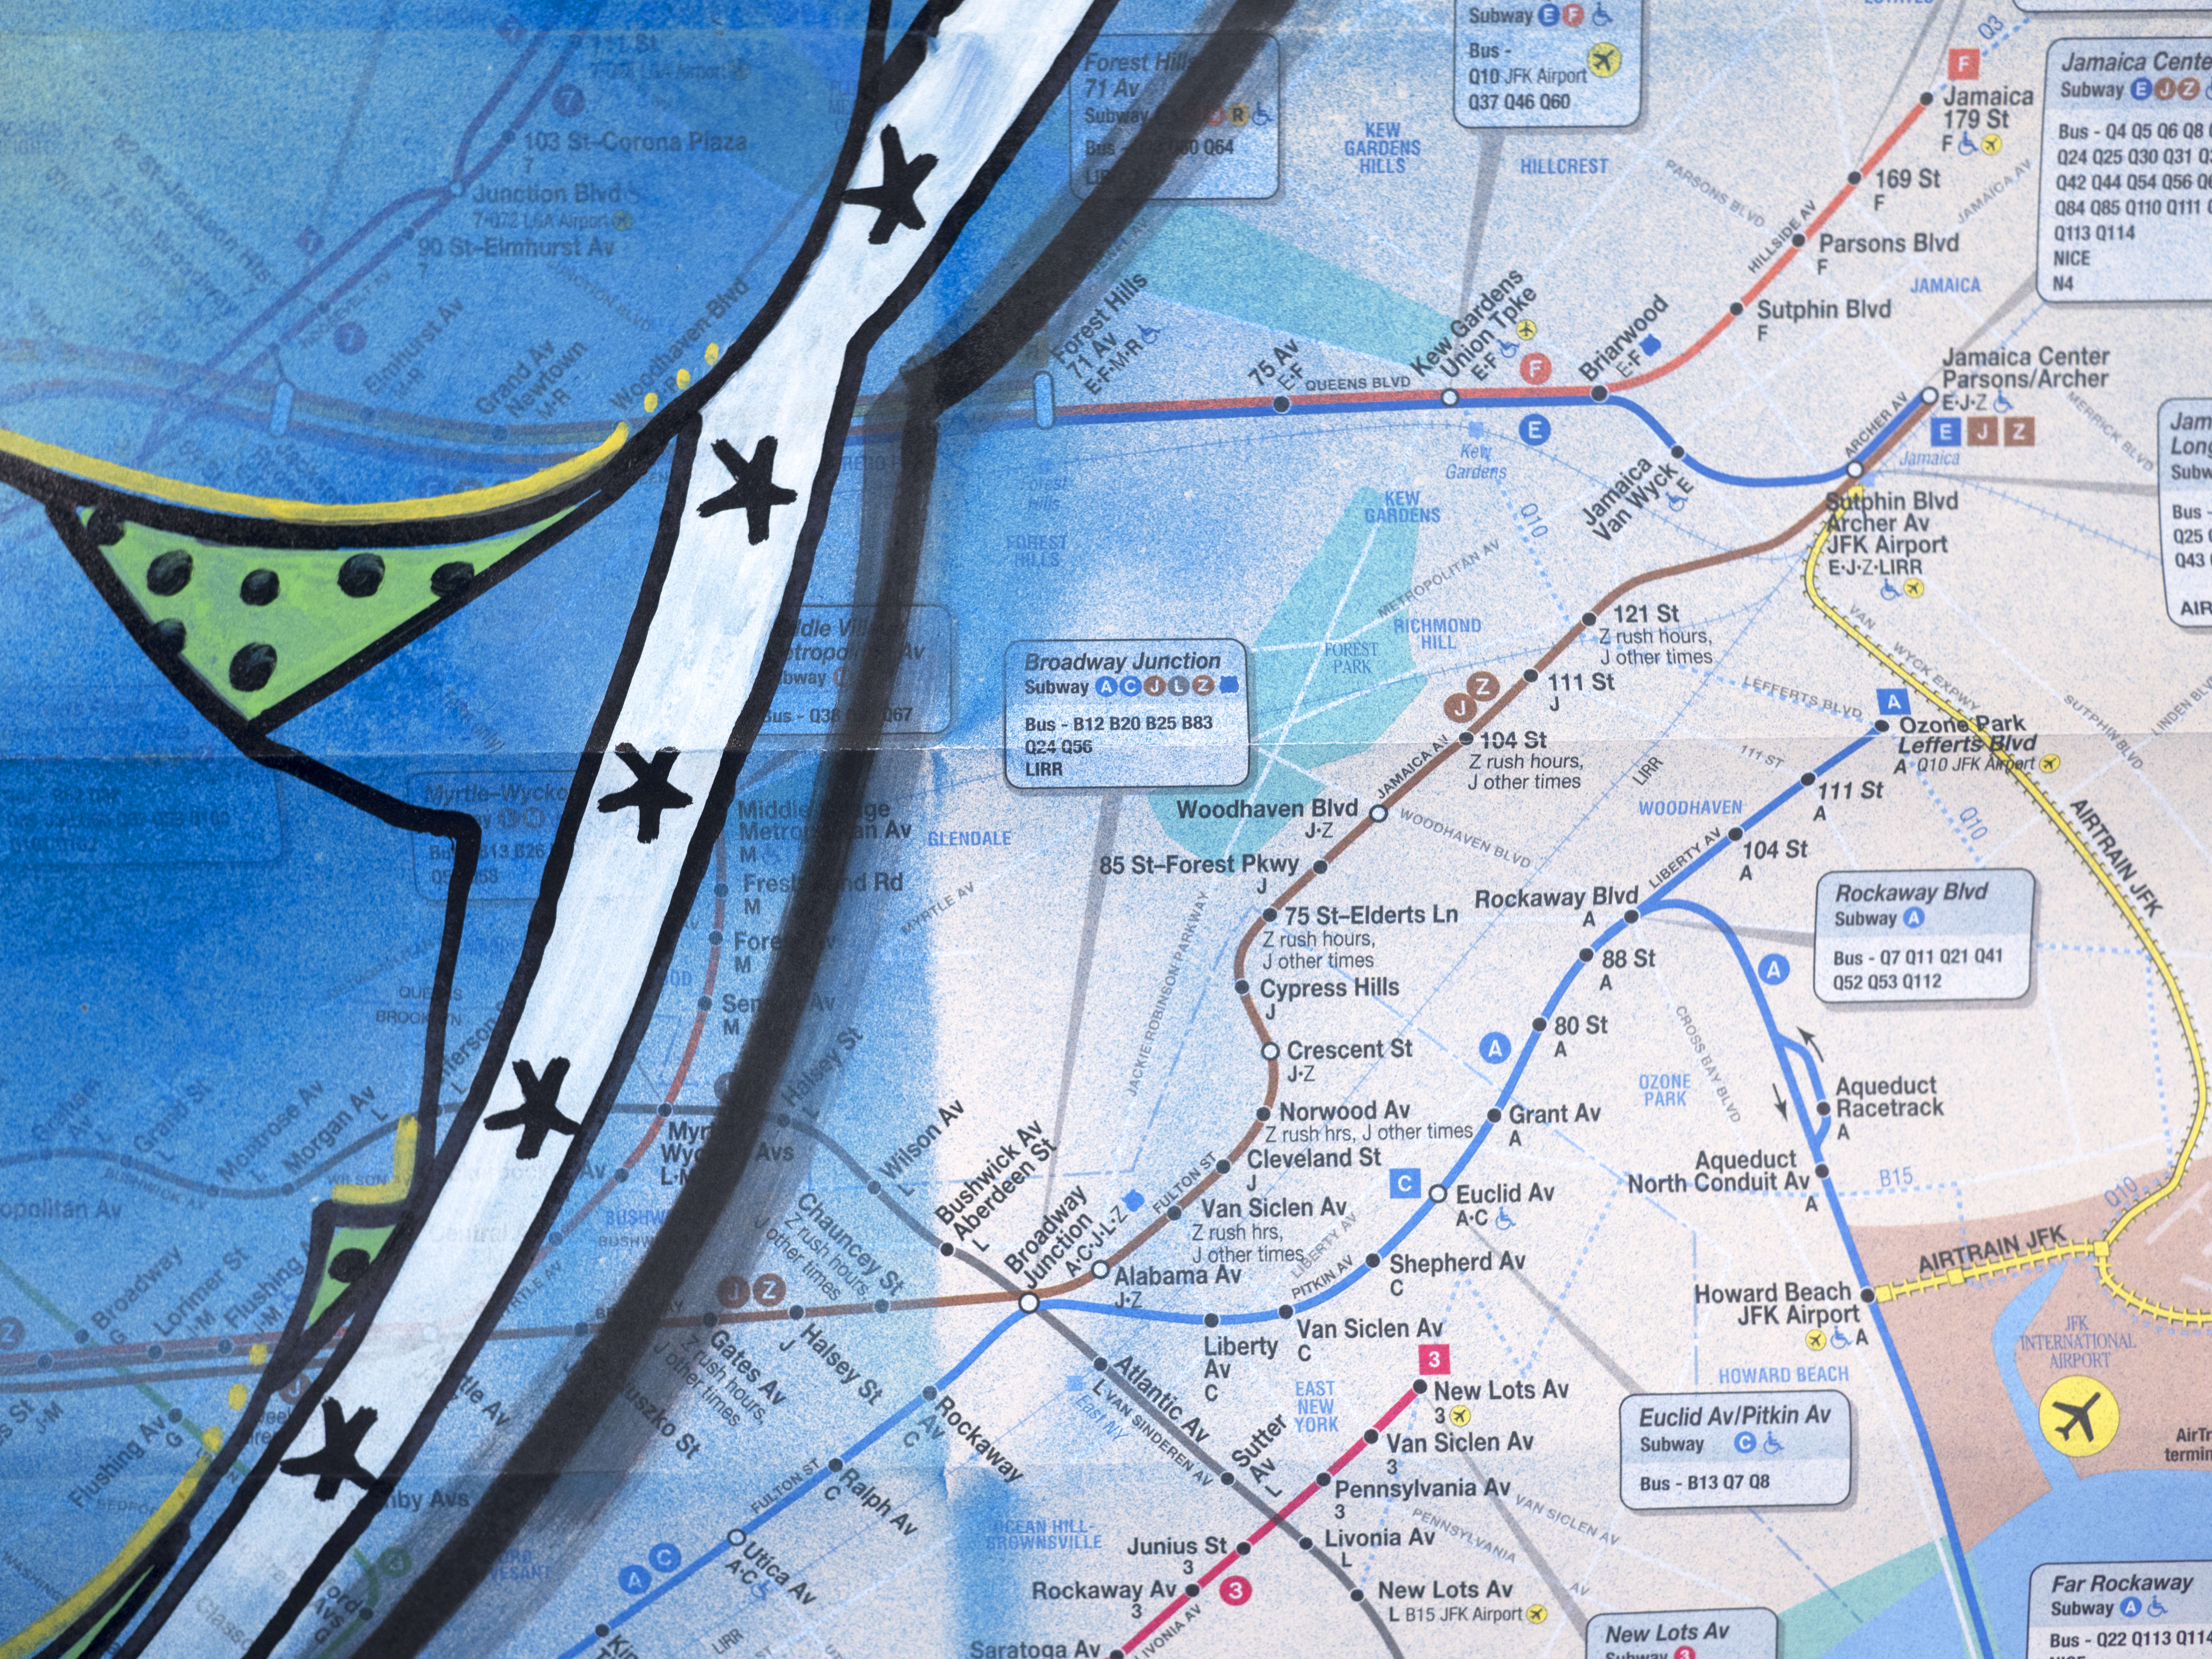 Jfk Subway Map.Original Subway Map 7 By Blade Nelly Duff